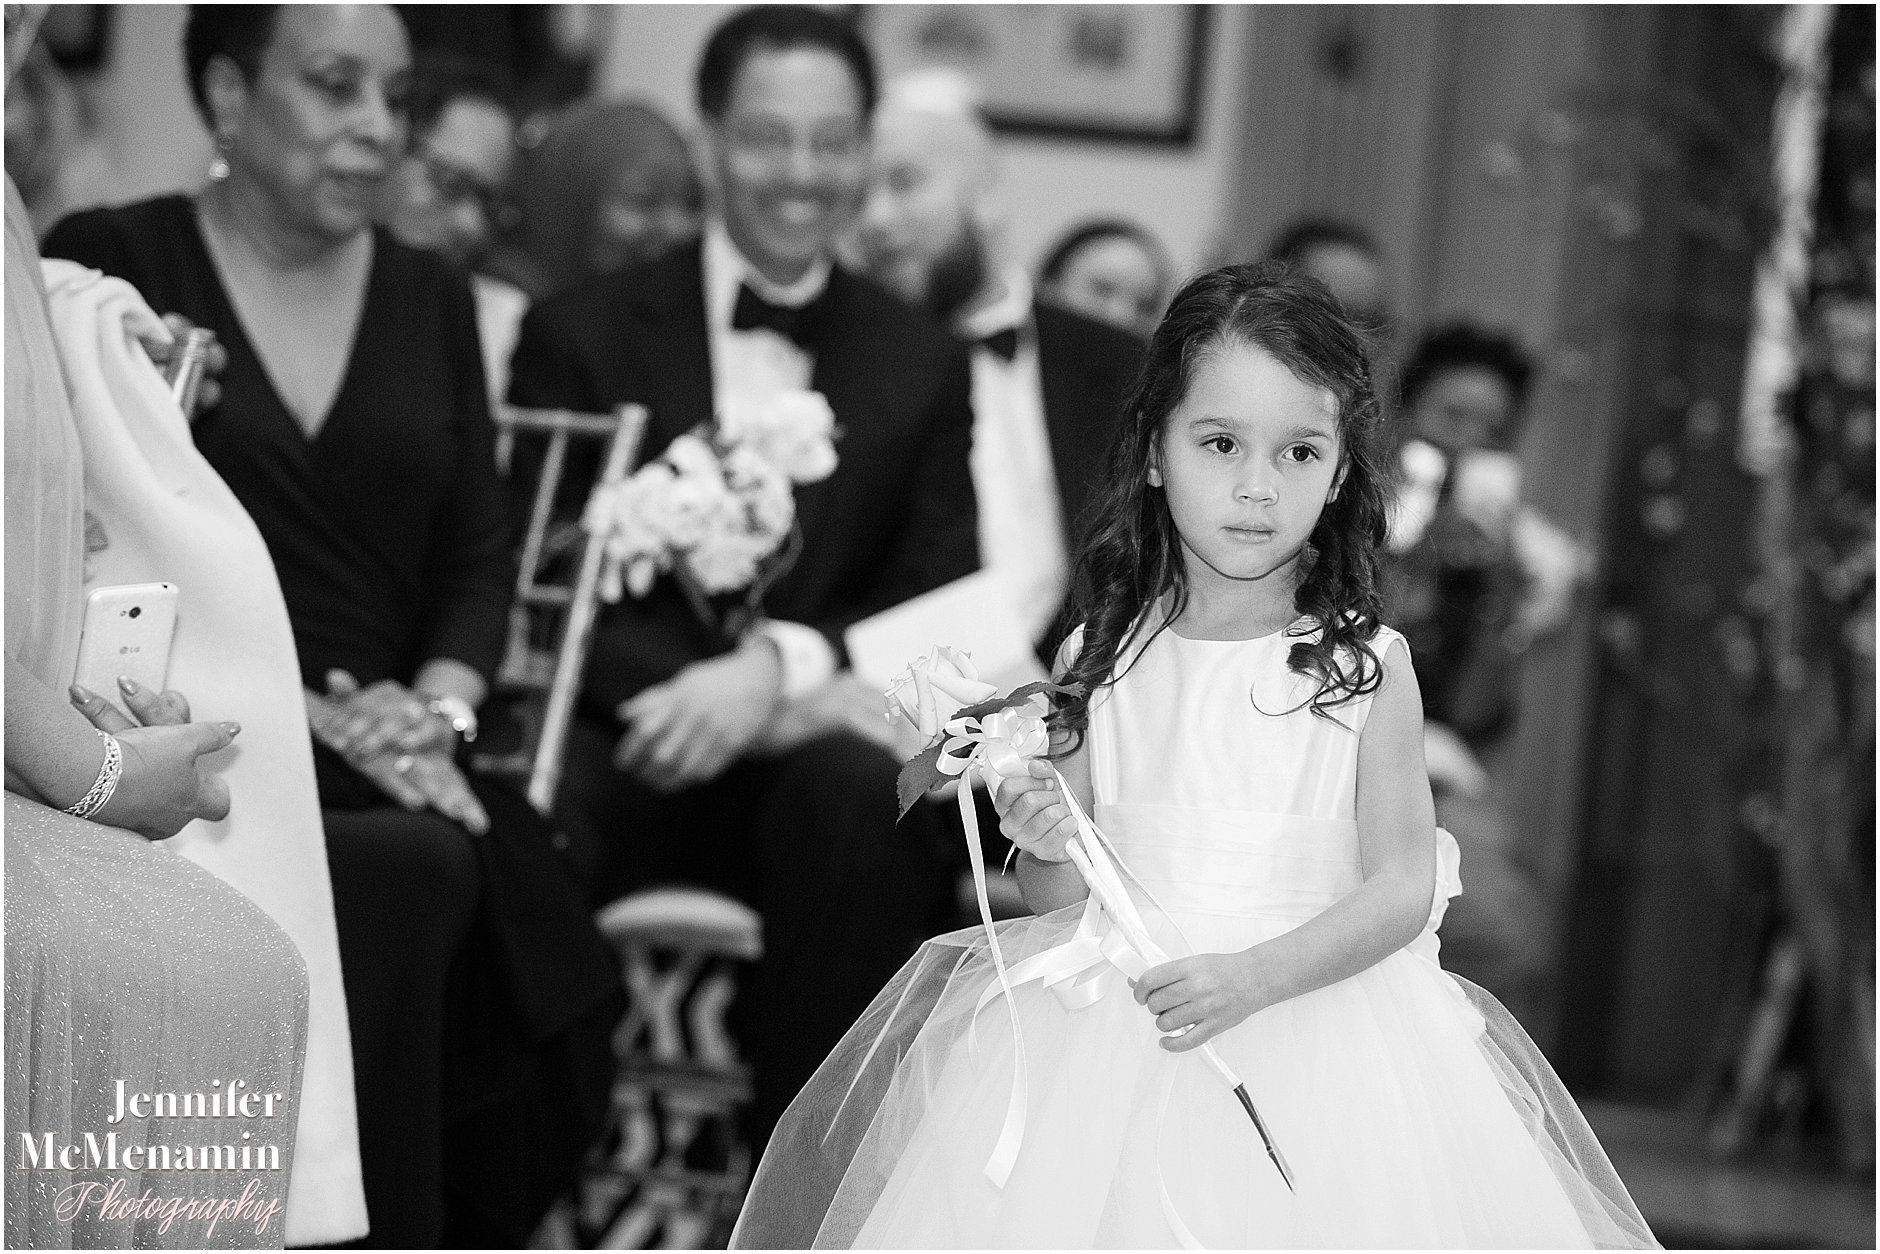 026-Peabody-Library-Wedding_WilsonPatterson_01399bw-0277_Jennifer-McMenamin-Photography